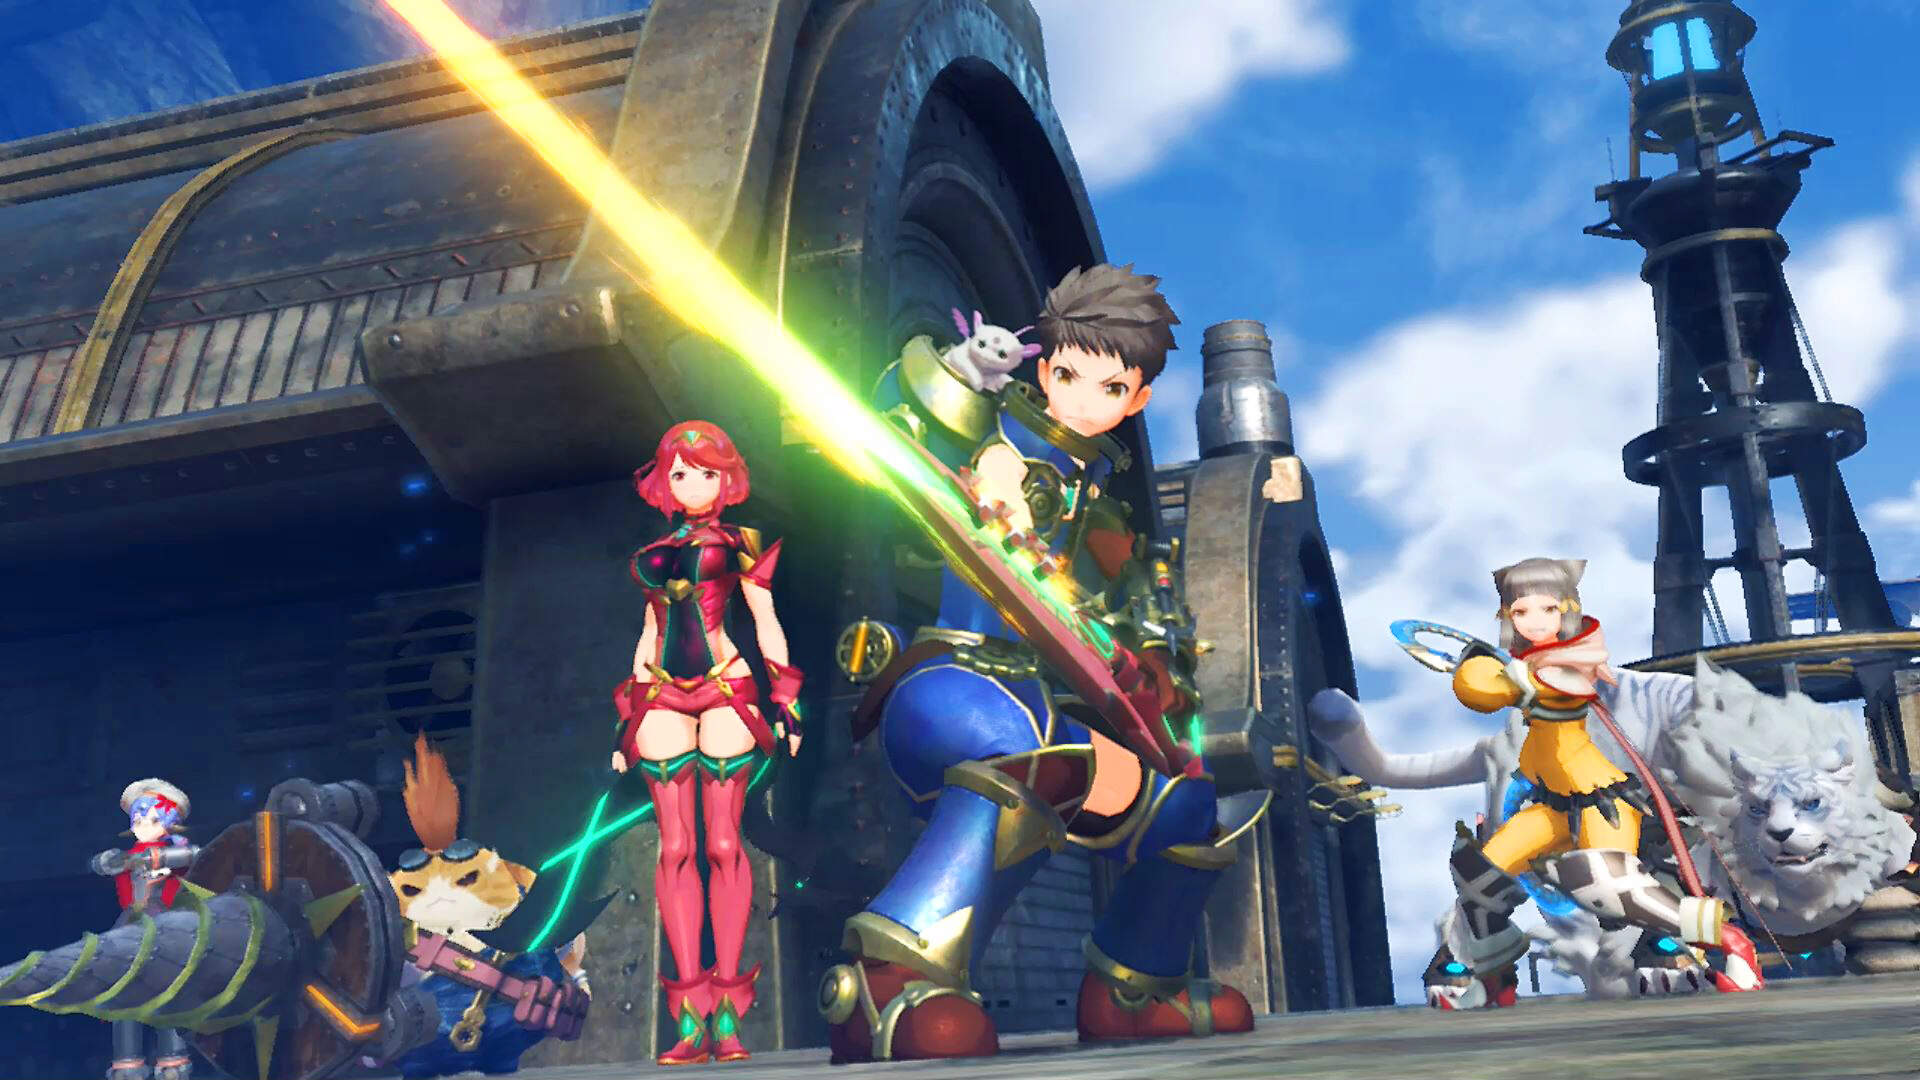 Xenoblade Chronicles 2 Rare Blades Guide - All Unique Abilities, How to Find Every Rare Blade, How to Unlock Herald